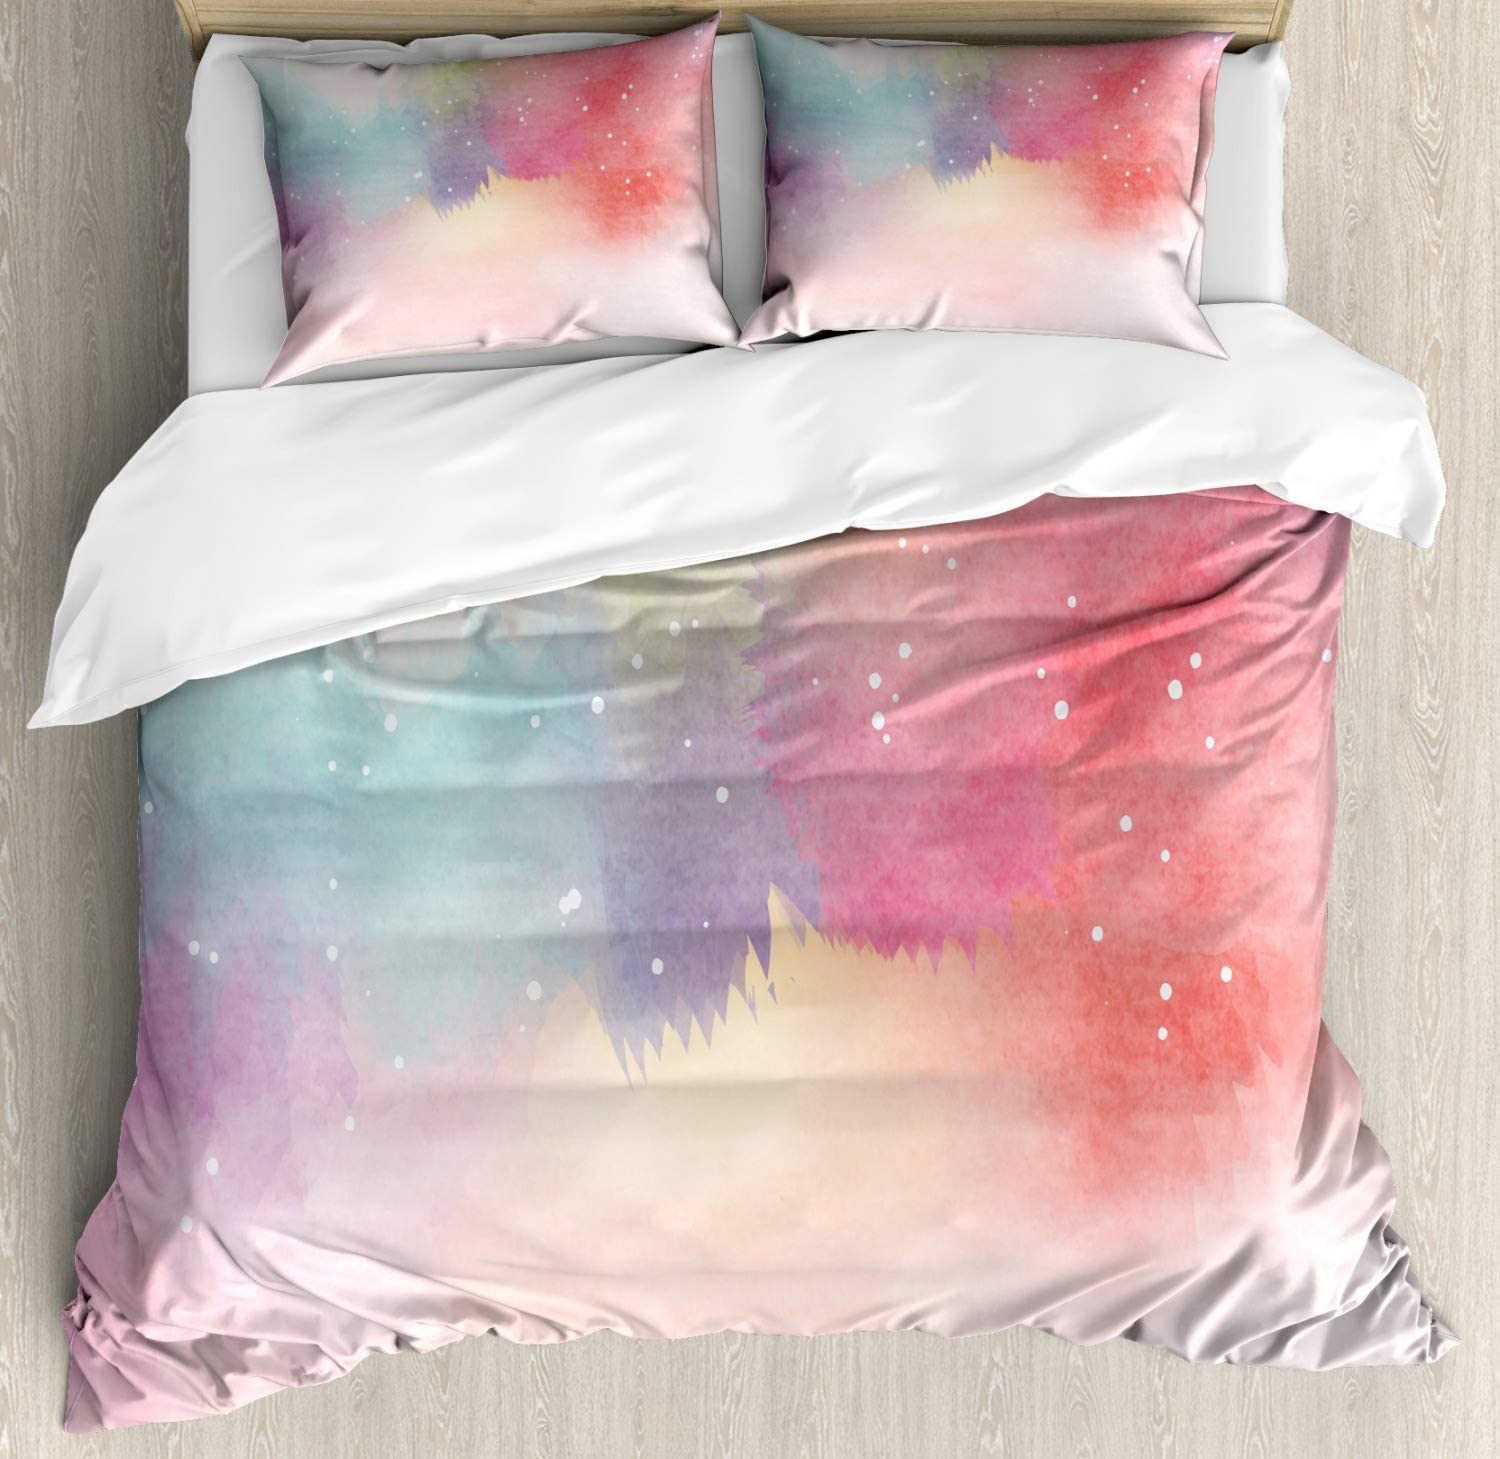 Ambesonne Abstract Duvet Cover Set A Decorative 3 Piece Bedding Set with Pillow Shams Multicolor Watercolor Galaxy Outer Space Star Dust Seemed Image in Vivid Colors Modern Print Theme Queen//Full